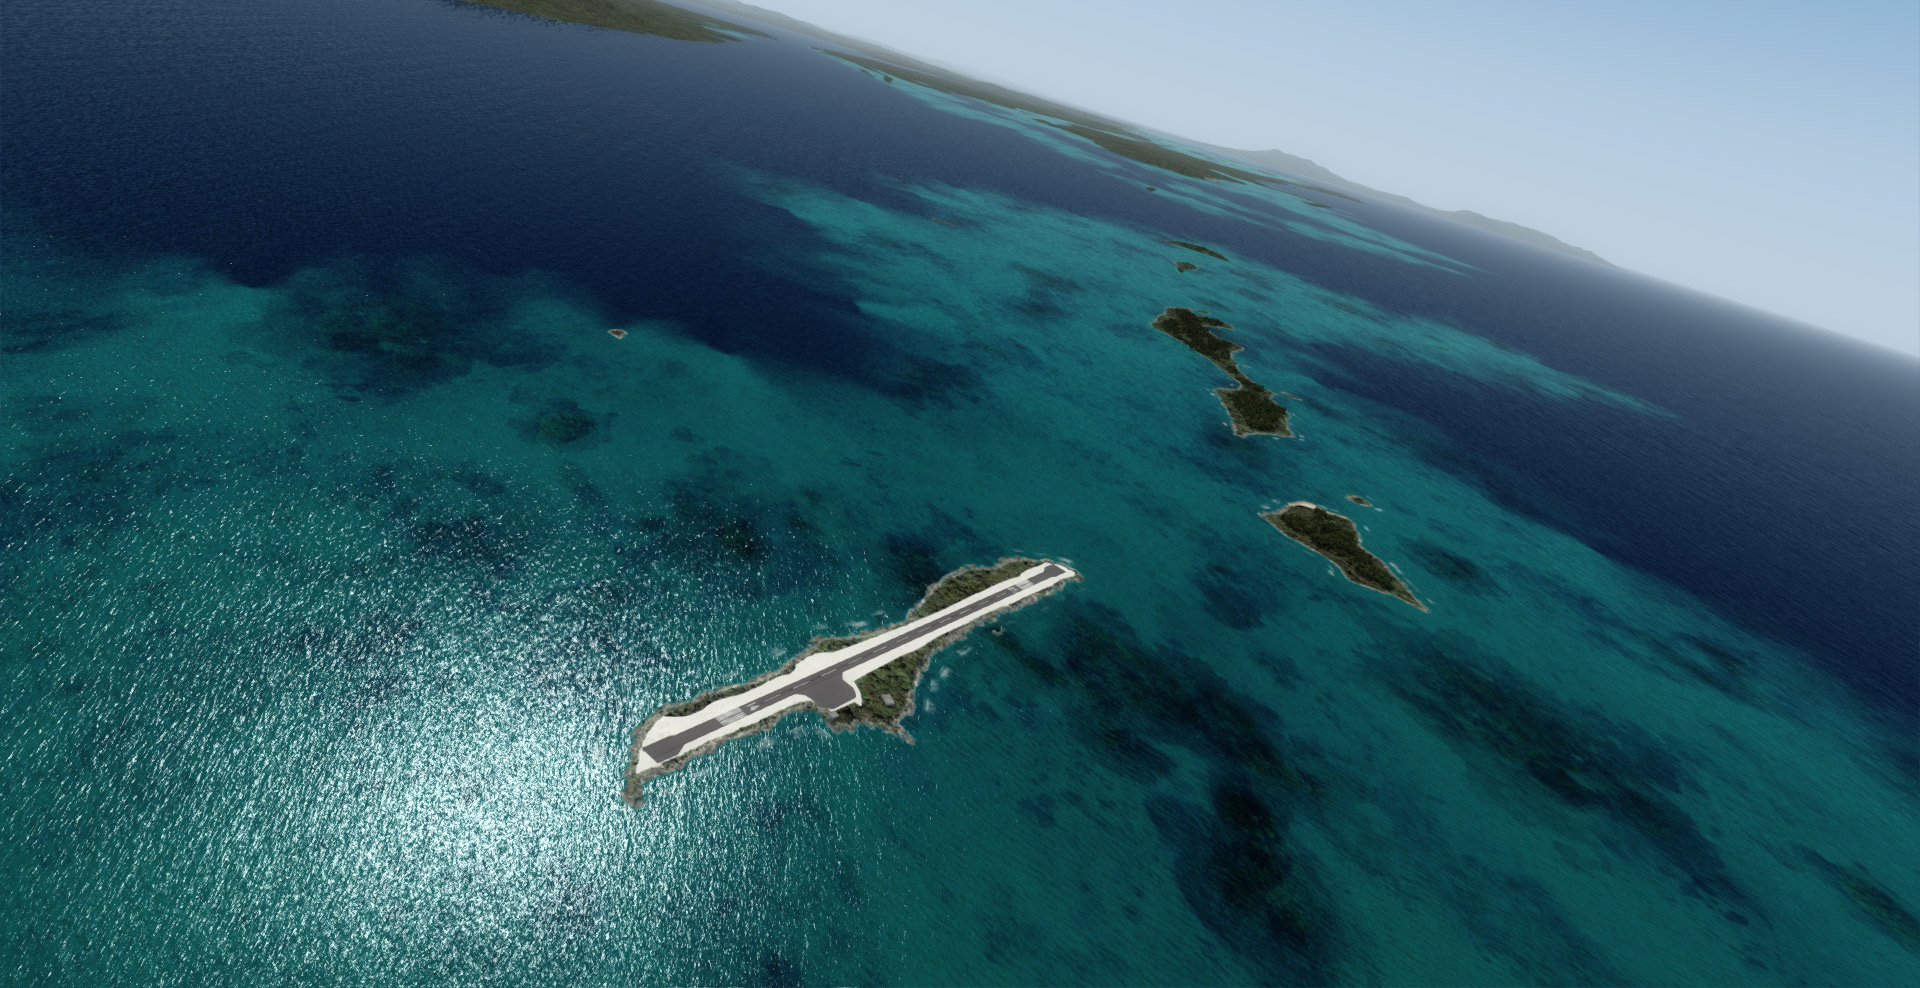 Solomon Islands X v0.51b - Aerial view of the updated AGGN Gizo airport.